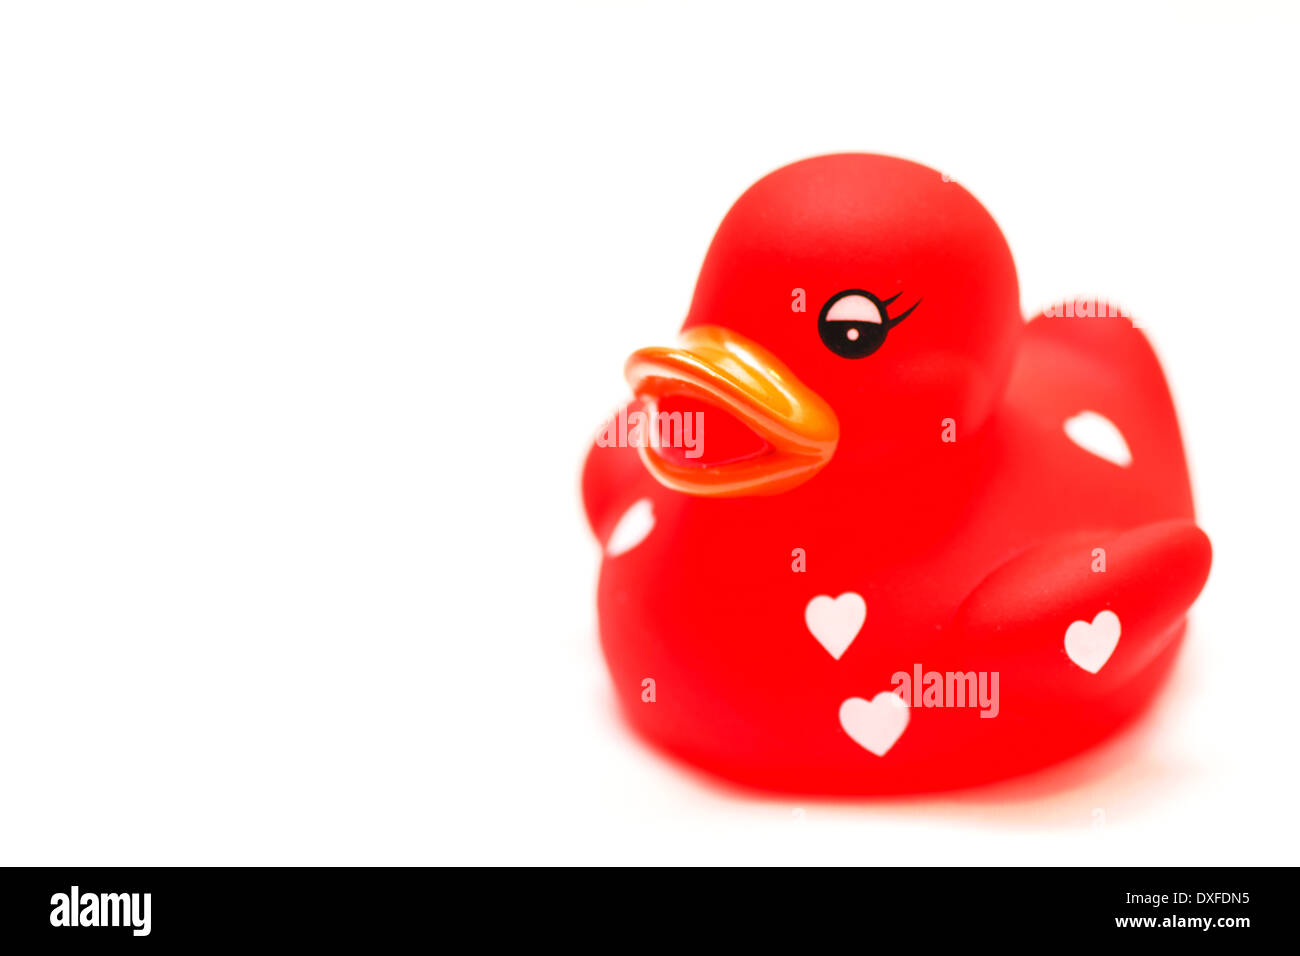 Red Rubber Duck - Stock Image